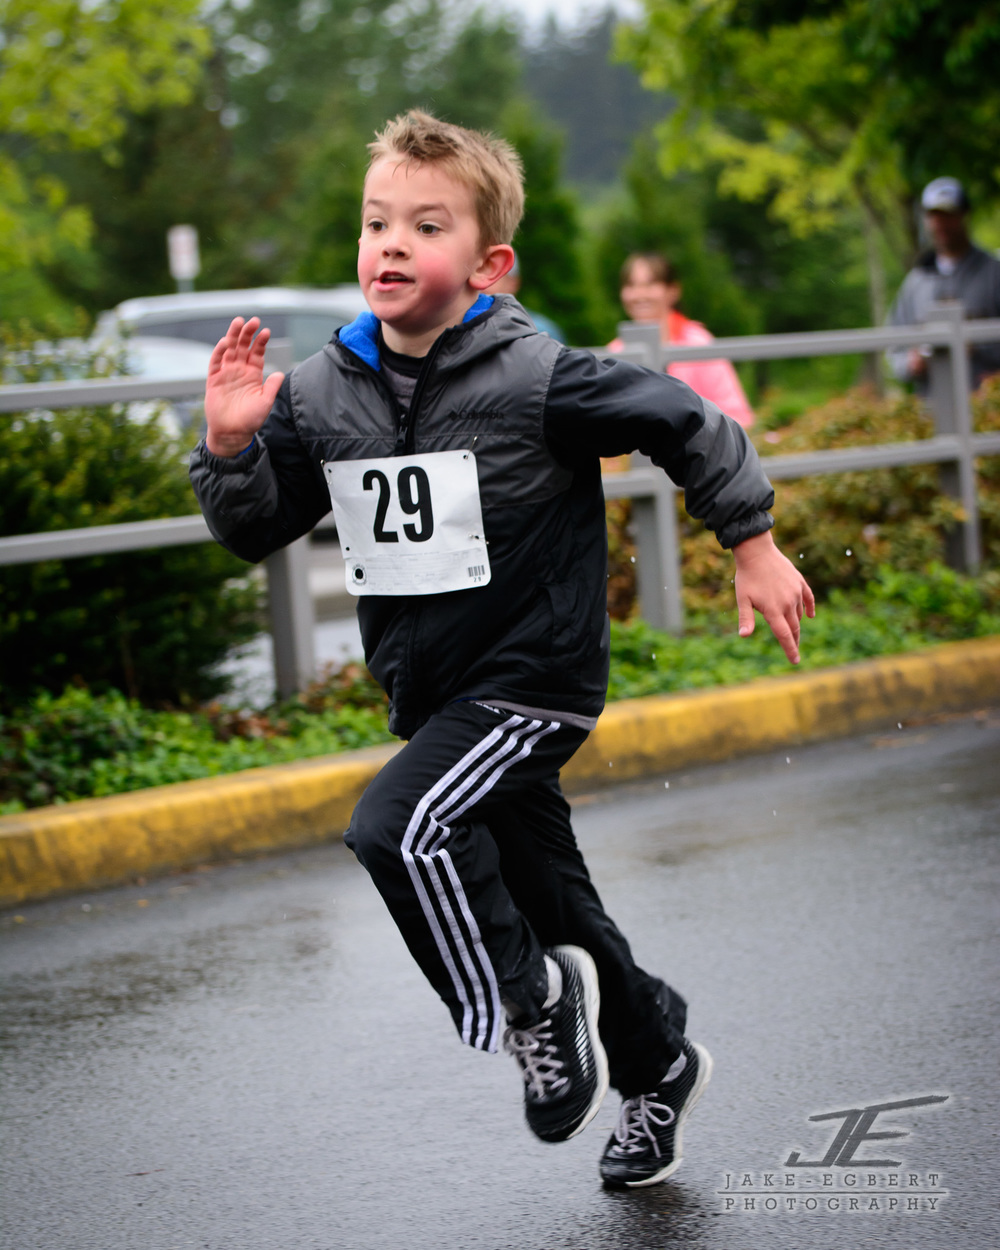 Happy Valley Fun Run 2014. Click to see the favorites gallery and to purchase prints or downloads.